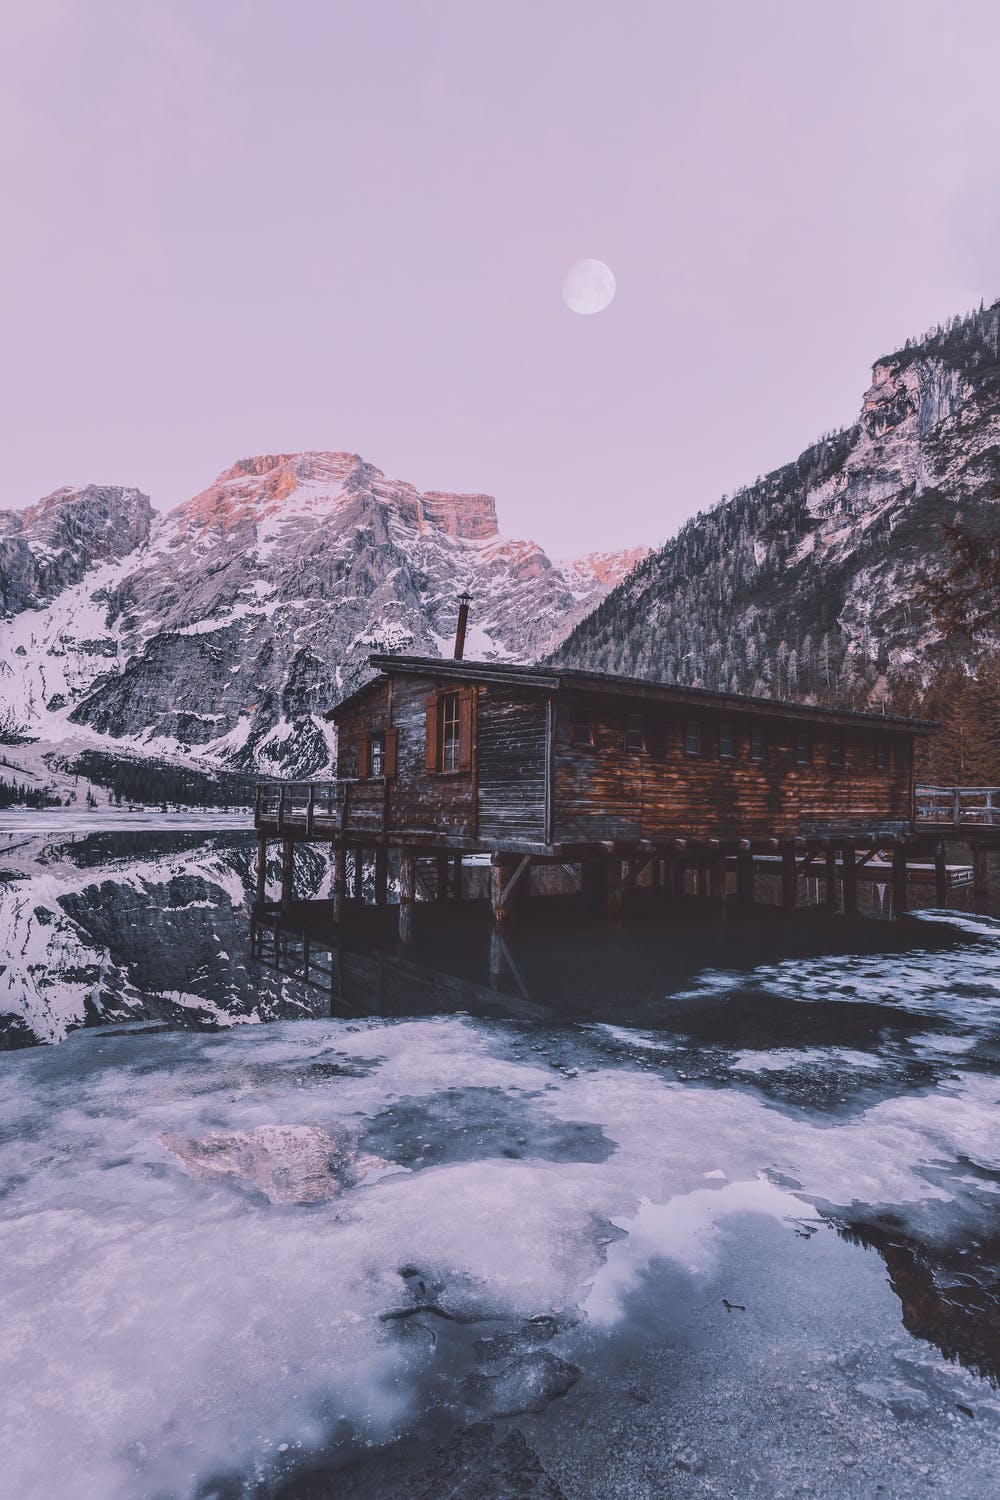 Purple skies wallpaper with mountains, lake and cottage